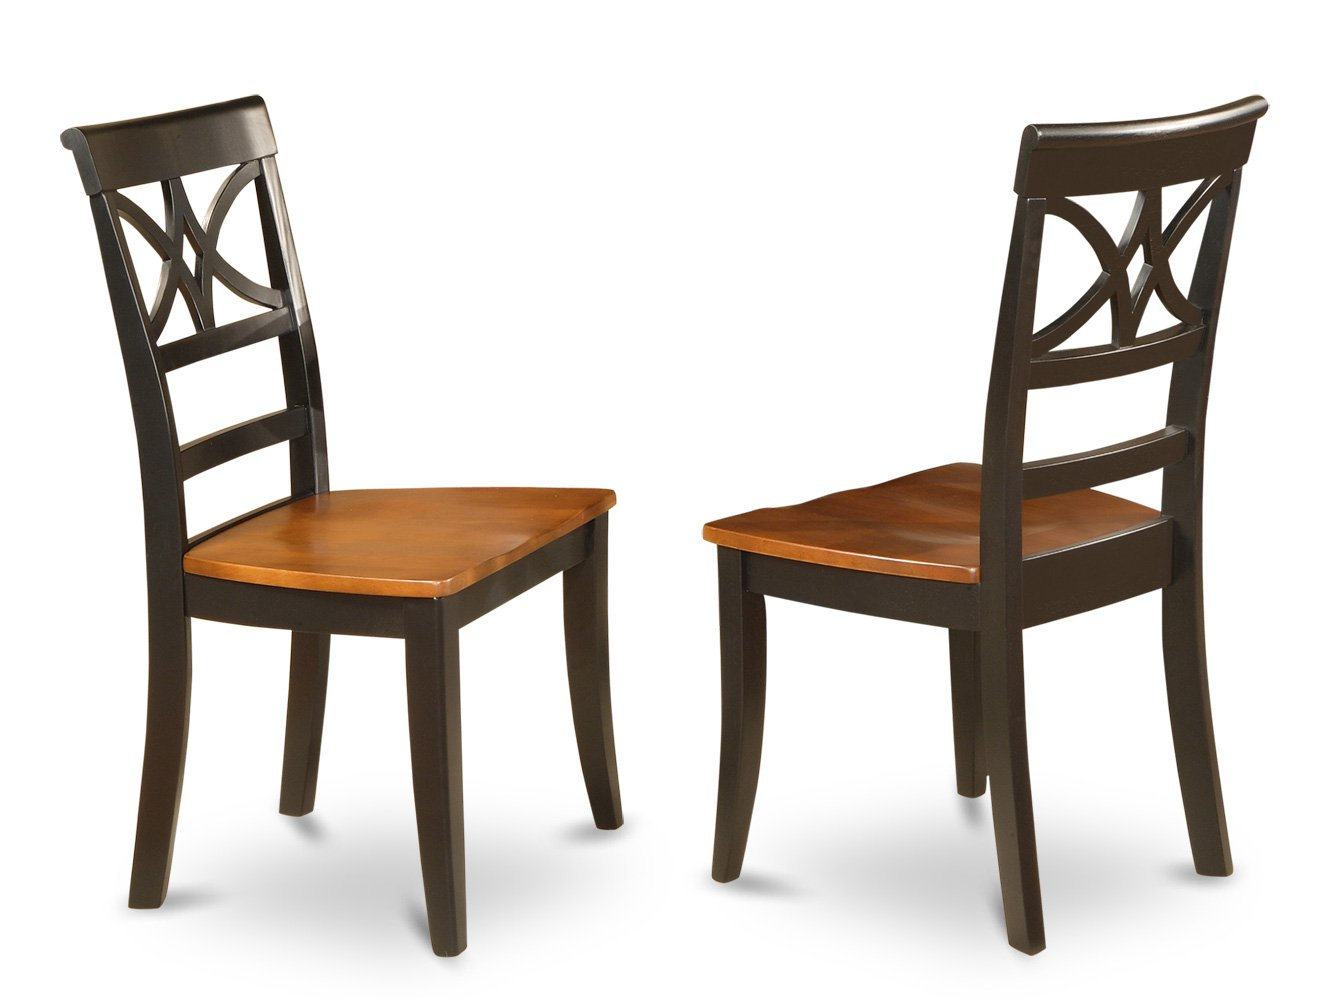 Set of 2 Ellington dining room chairs with upholstered or wood seat in Black & Cherry finish.